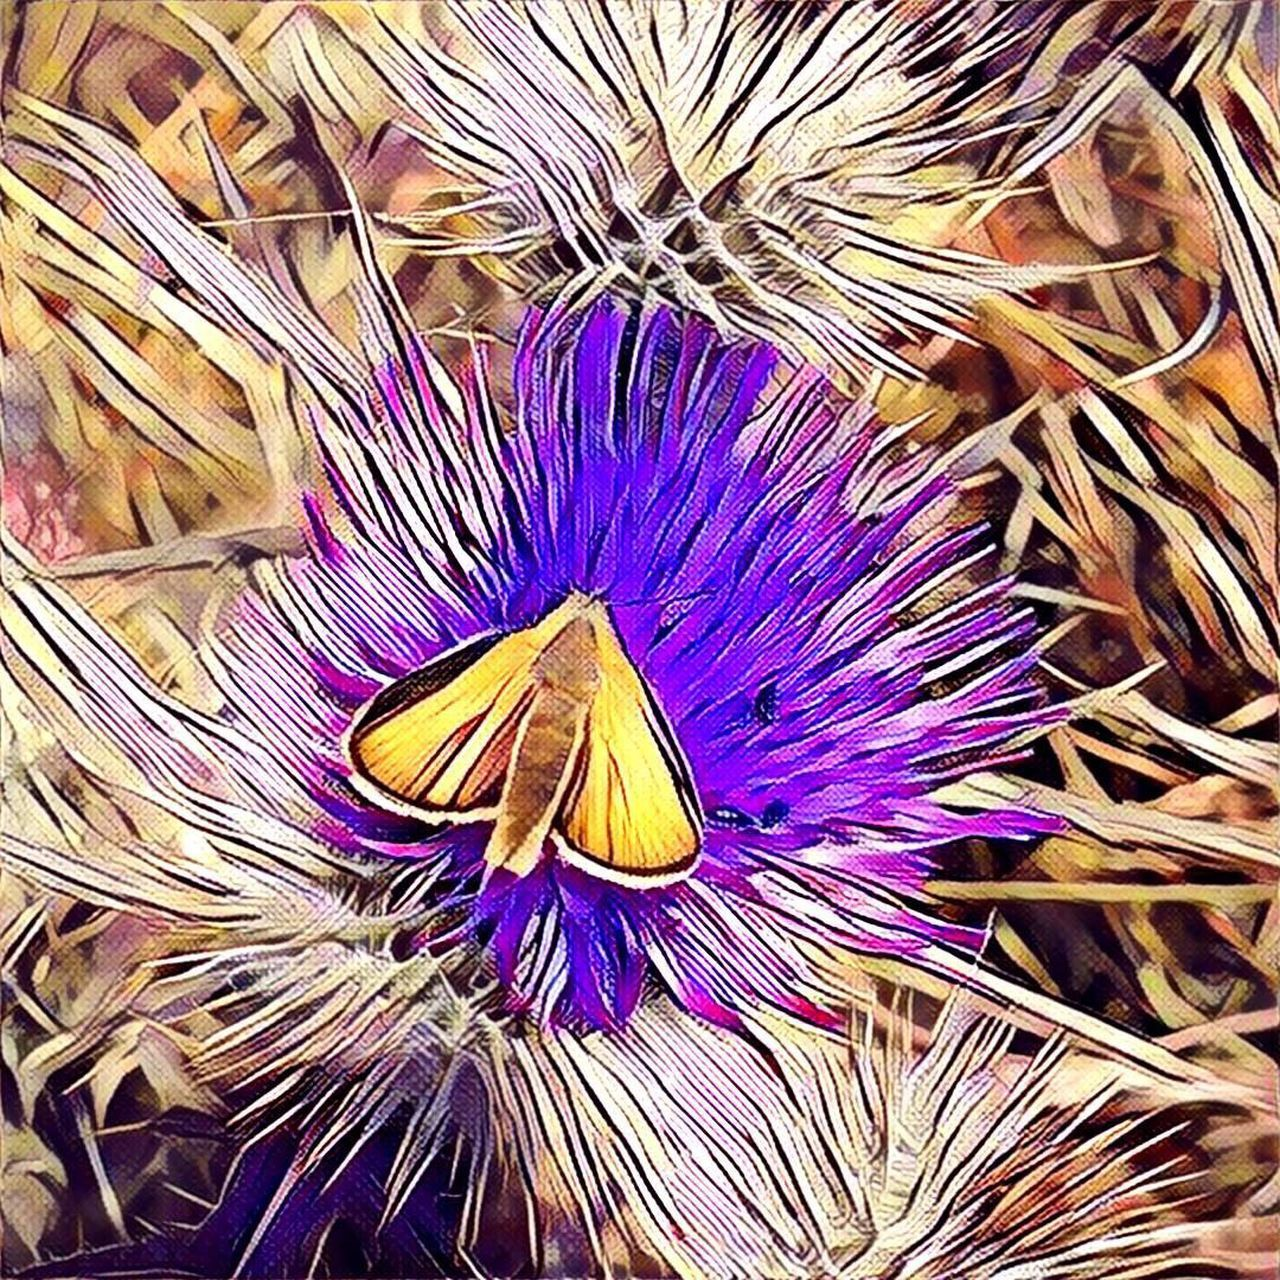 Nature Graphic Illustration Painterly Photo Art Iphone6s ShotOnIphone Butterfly Insect IPhoneography Wildflowers